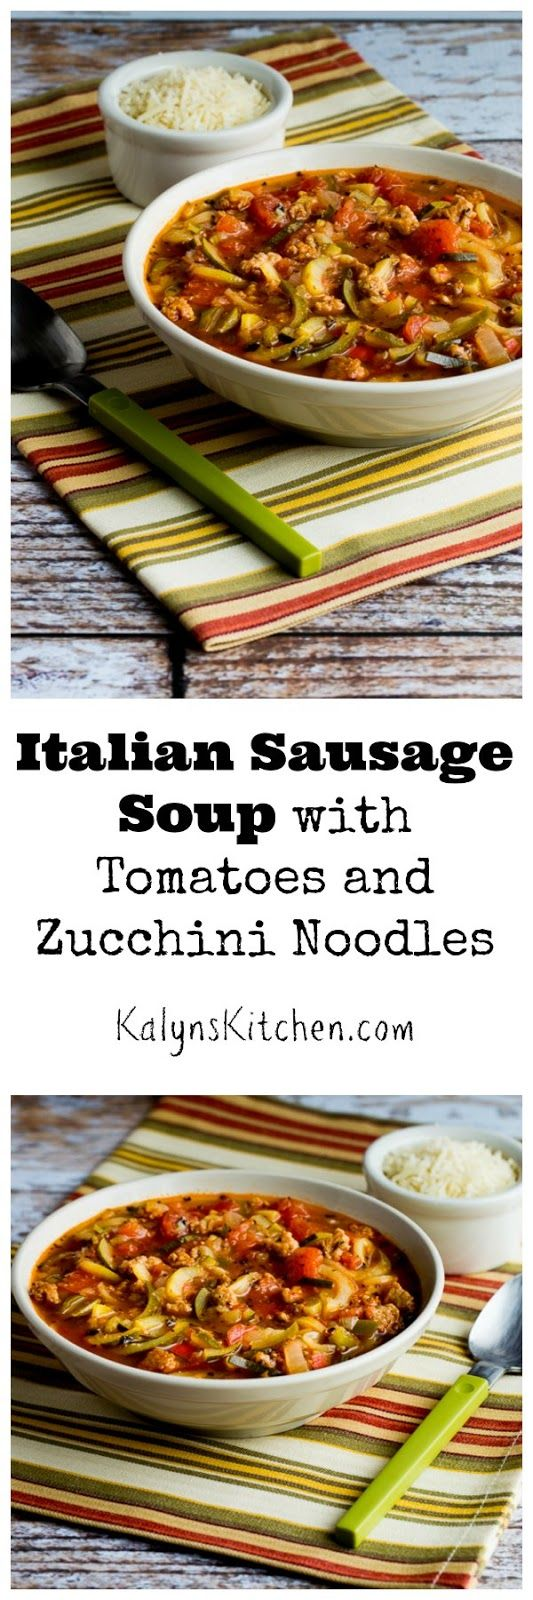 Don't put away your spiralizer for winter; this Low-Carb Italian Sausage Soup with Tomatoes and Zucchini Noodles also gluten-free, and can be Paleo or Whole 30. [found on KalynsKitchen.com]